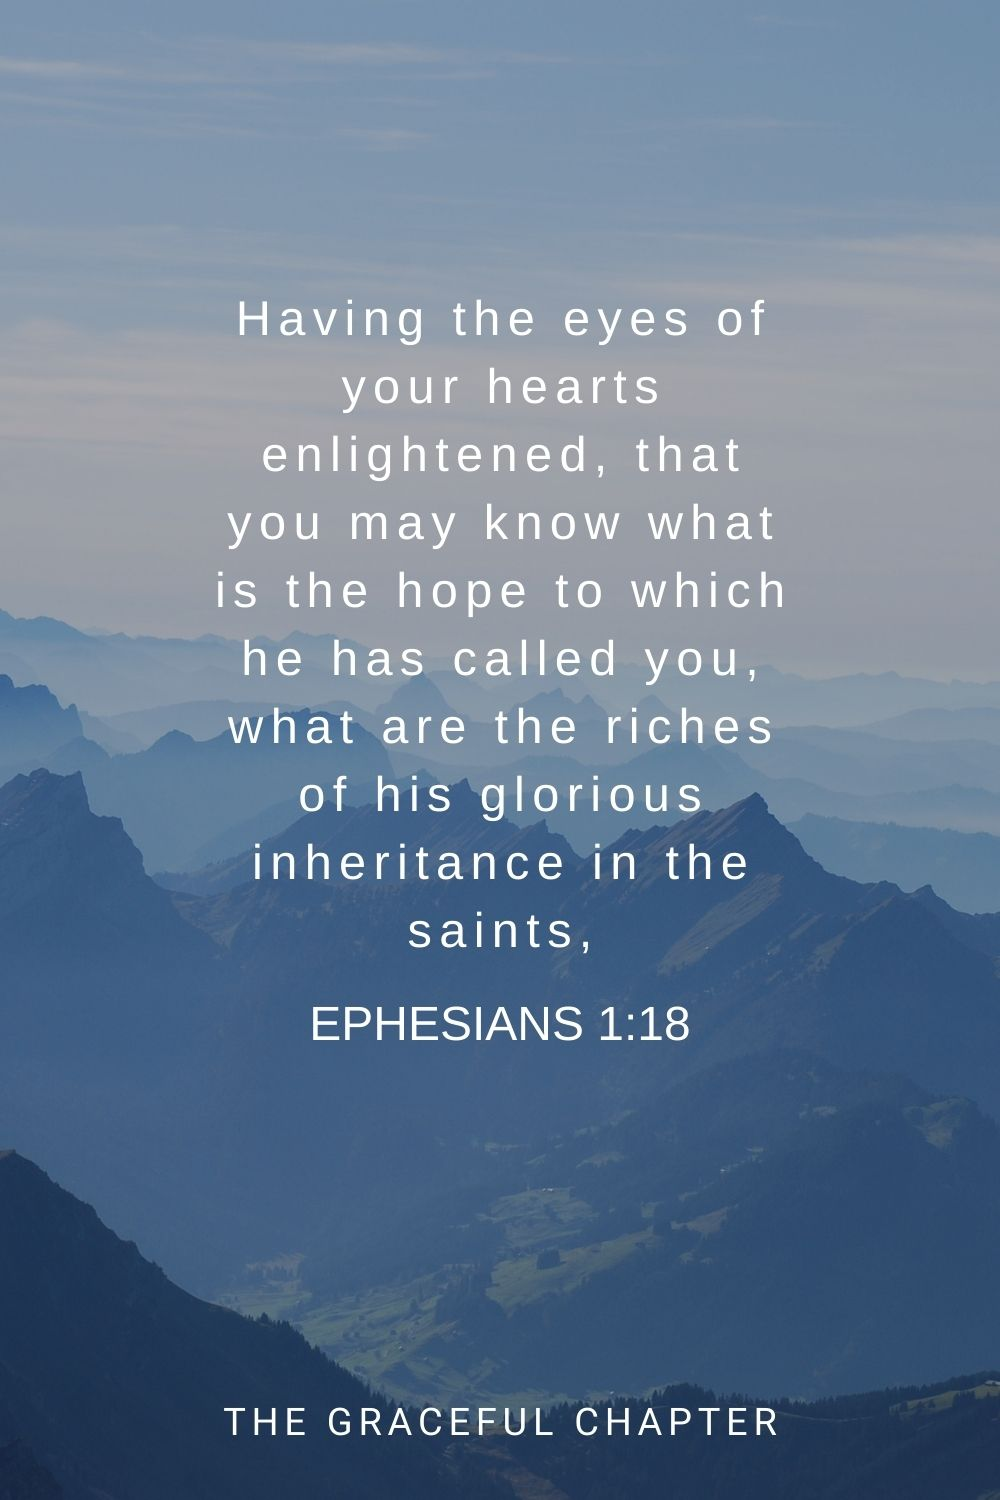 Having the eyes of your hearts enlightened, that you may know what is the hope to which he has called you, what are the riches of his glorious inheritance in the saints, Ephesians 1:18